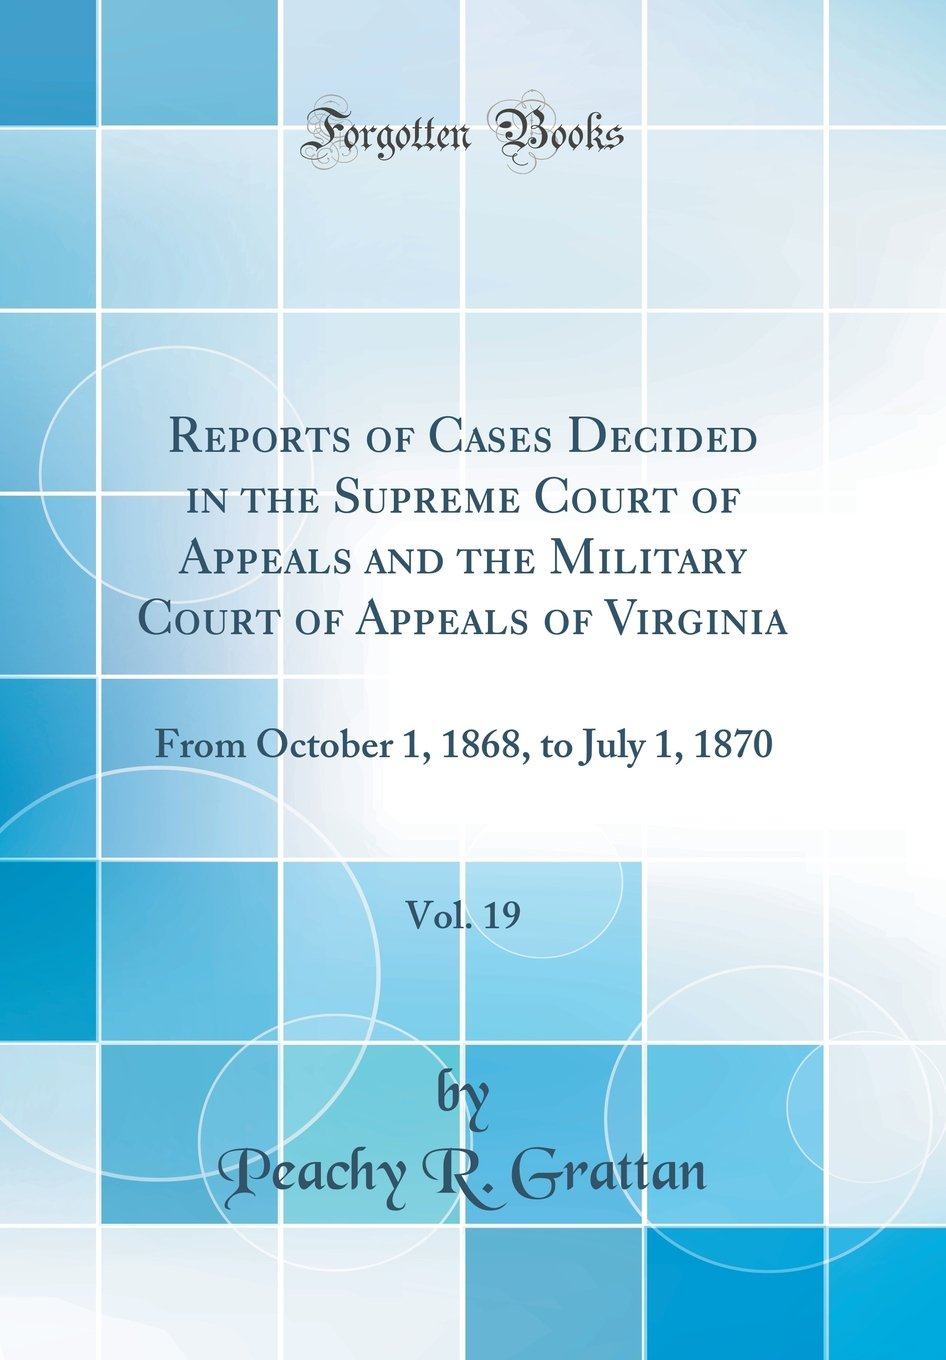 Download Reports of Cases Decided in the Supreme Court of Appeals and the Military Court of Appeals of Virginia, Vol. 19: From October 1, 1868, to July 1, 1870 (Classic Reprint) pdf epub